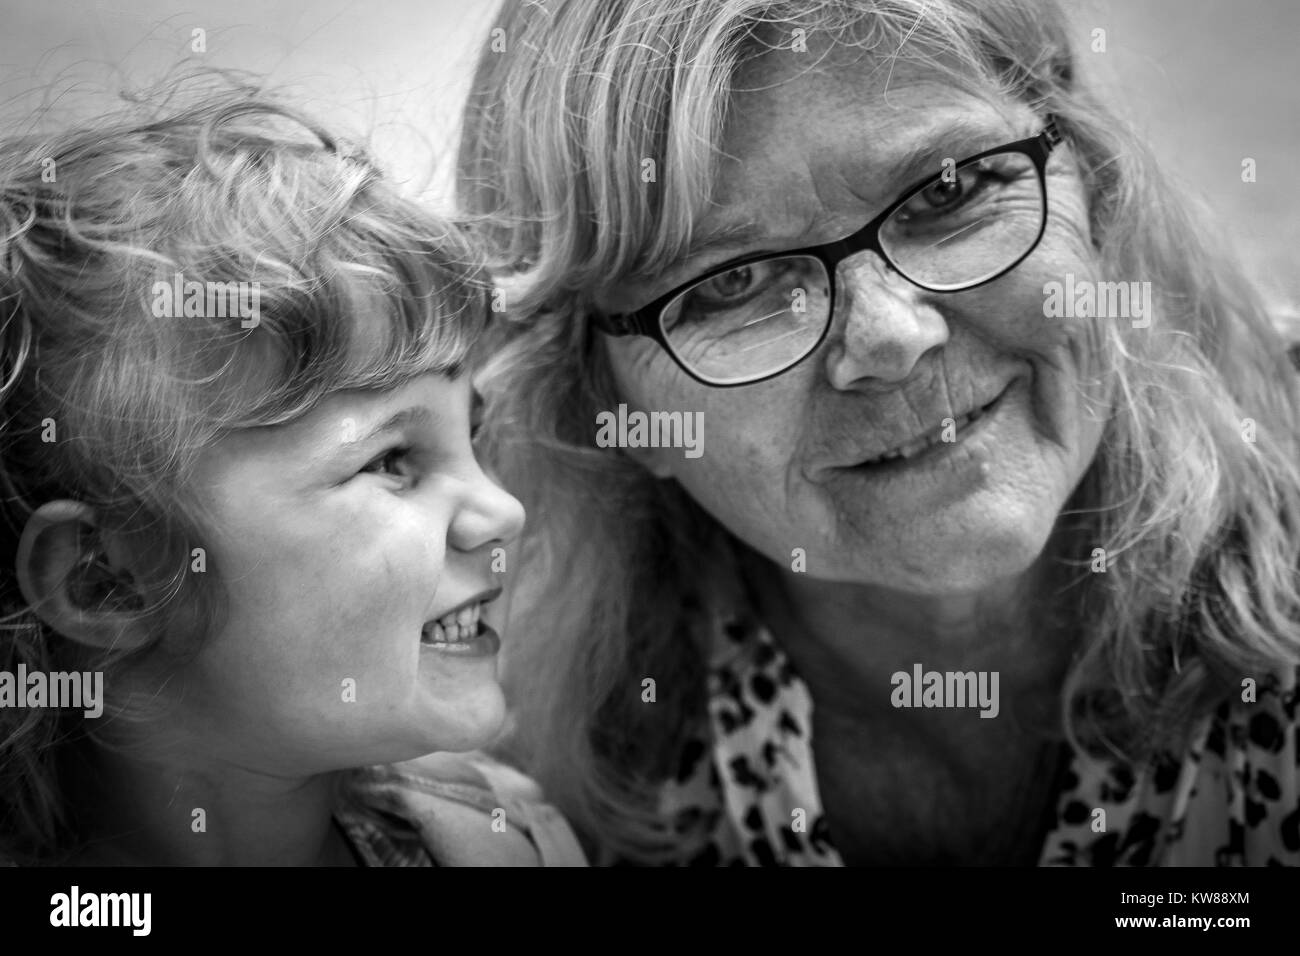 Young girl looks to her grandmother with pure happiness in a black and white photograph. Often times we forget about - Stock Image